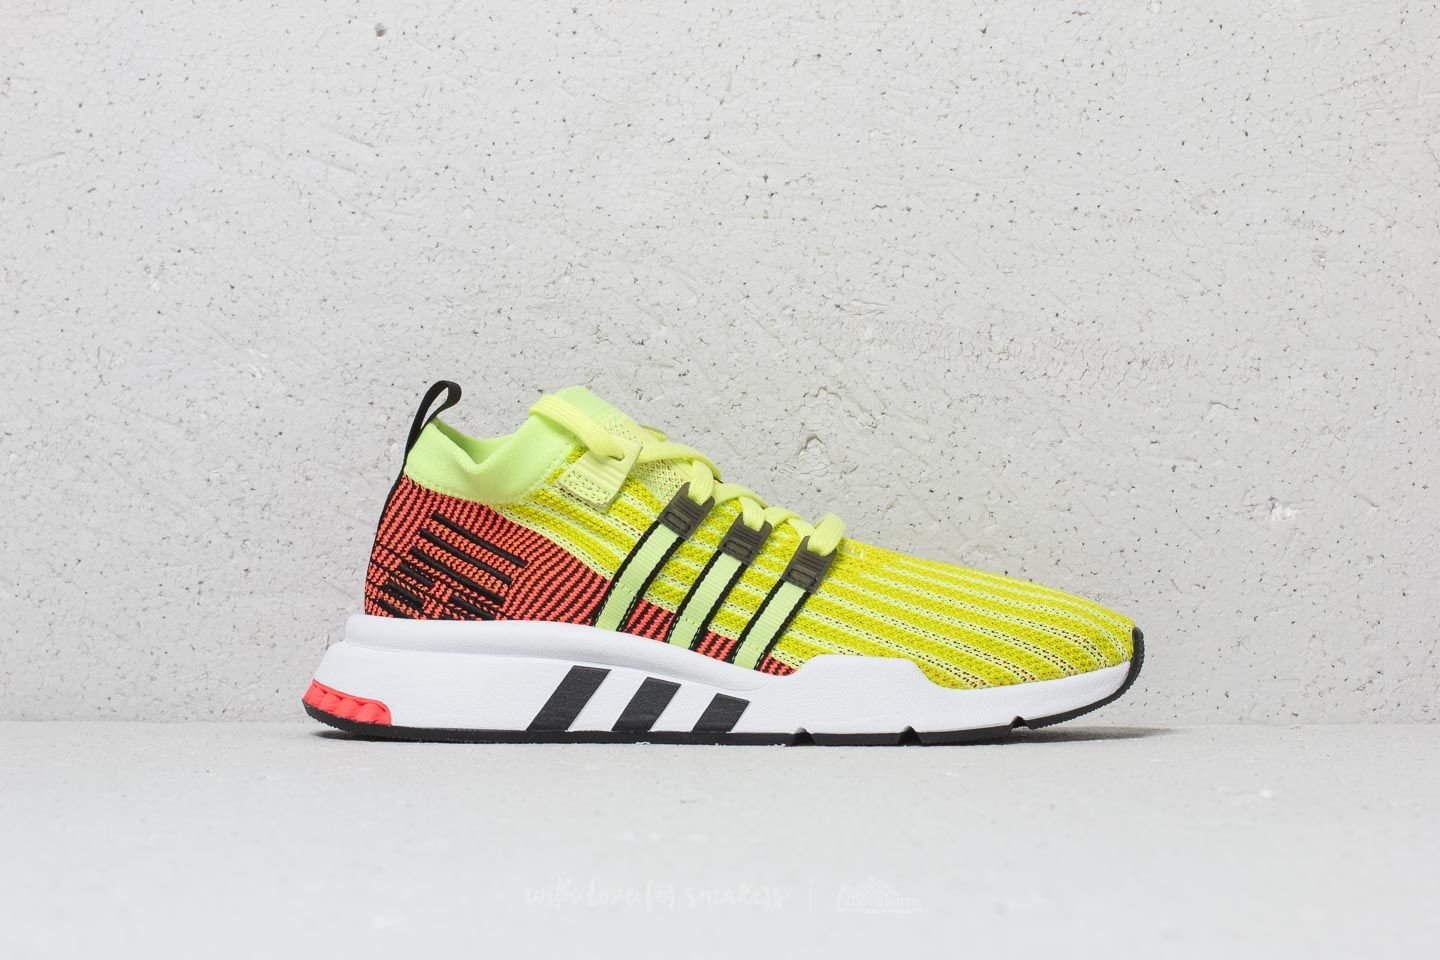 official photos e94e1 579ea Adidas EQT Support Mid ADV PK Glow Core Black Turbo at a great price